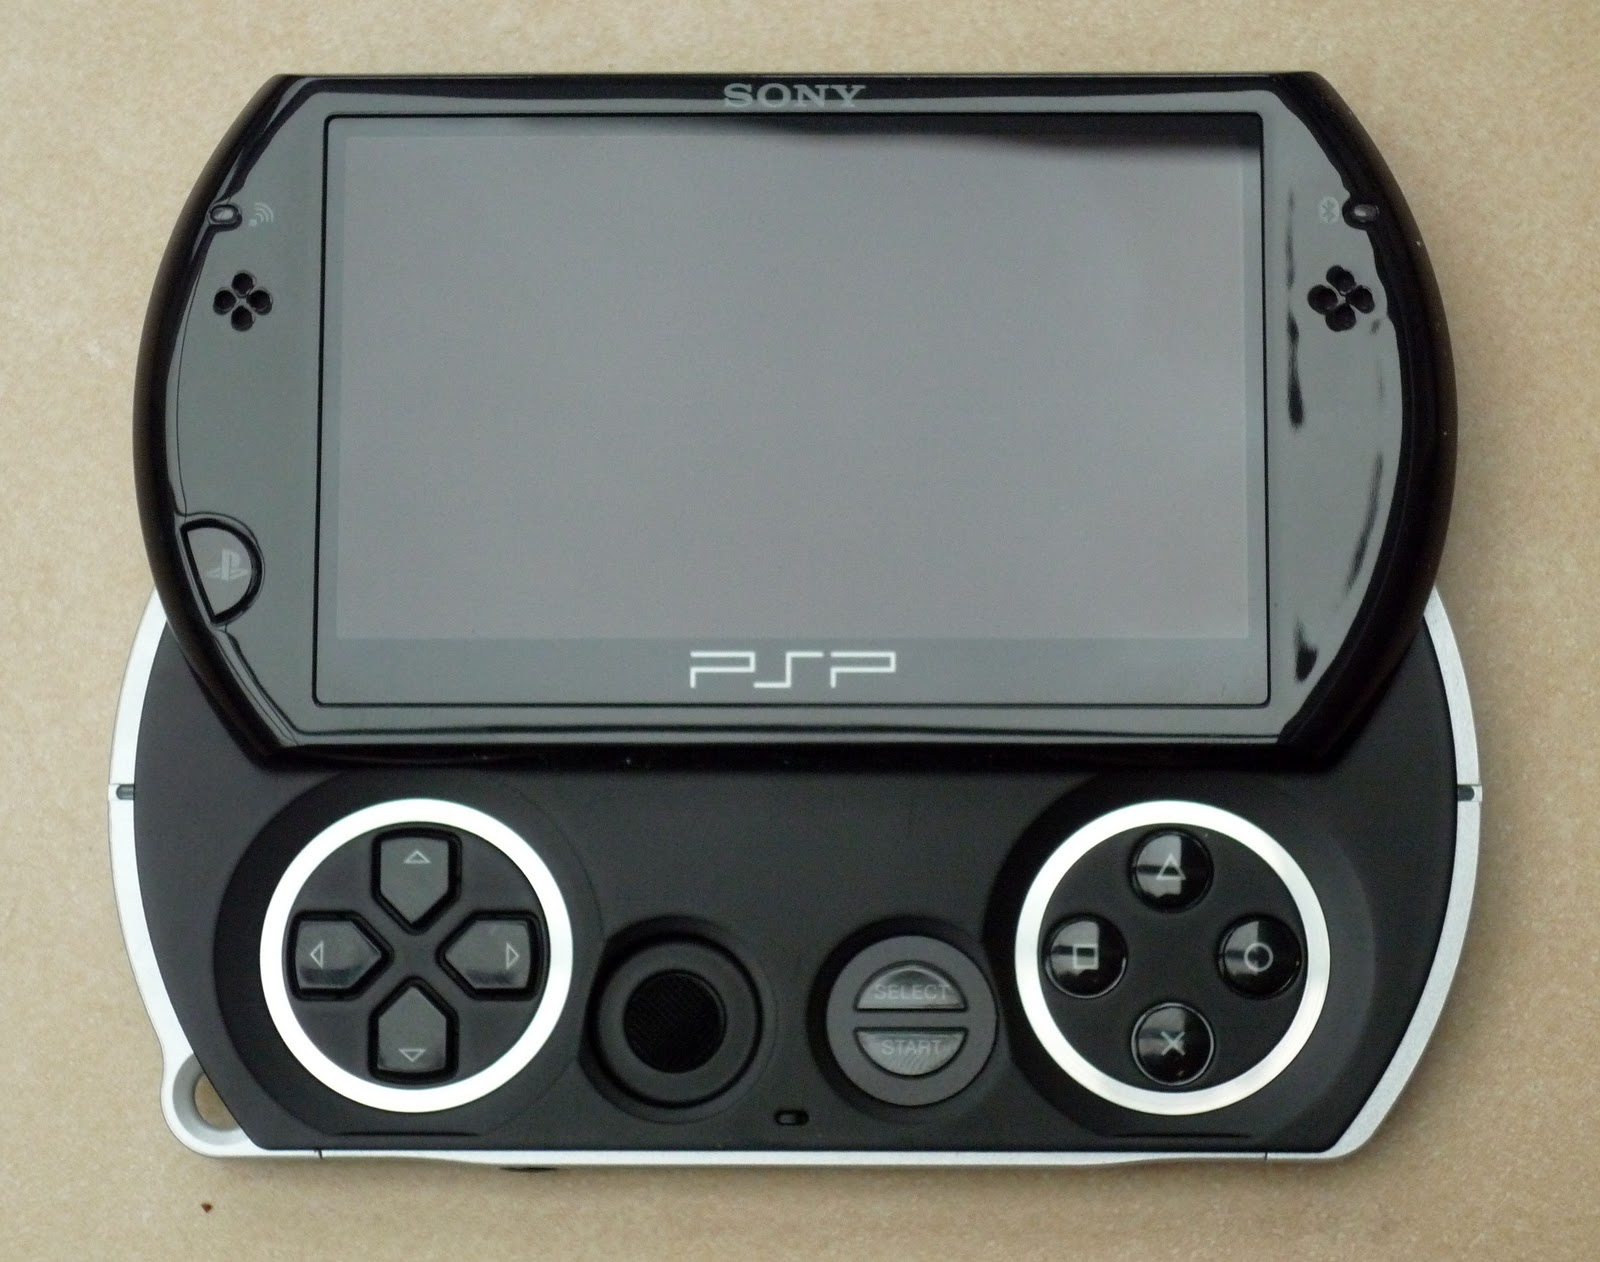 Psp Go Wallpaper | New hd wallon